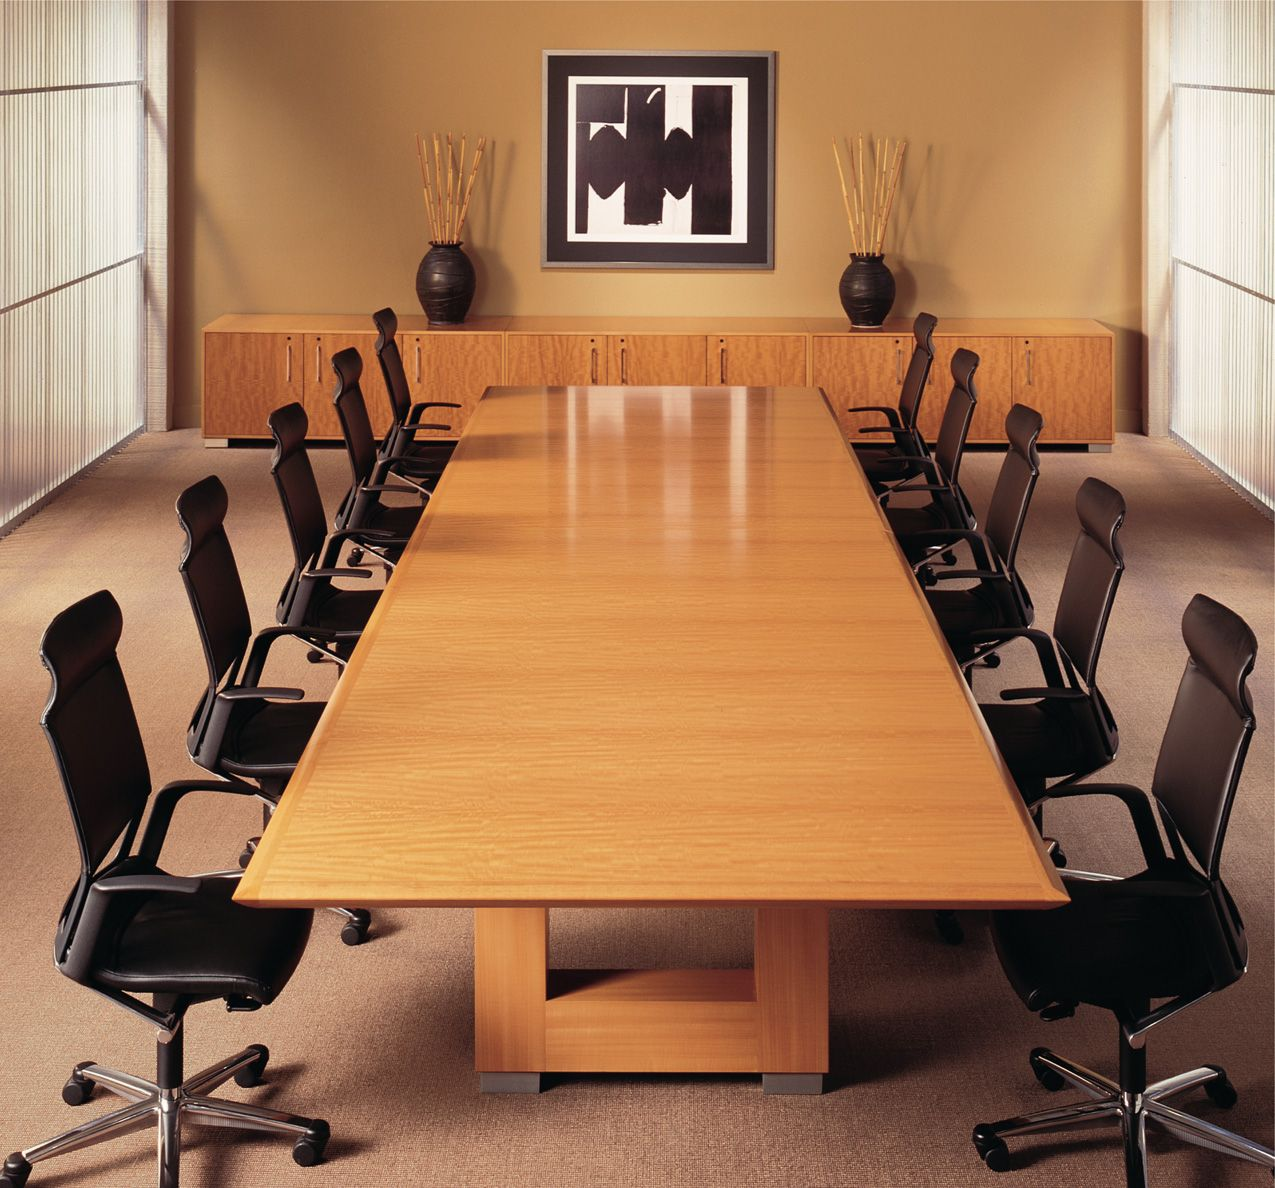 Interior Impressive Office Meeting Room Design Ideas With Amazing Great Bright Brown Glos Conference Room Design Meeting Room Design Meeting Room Design Office